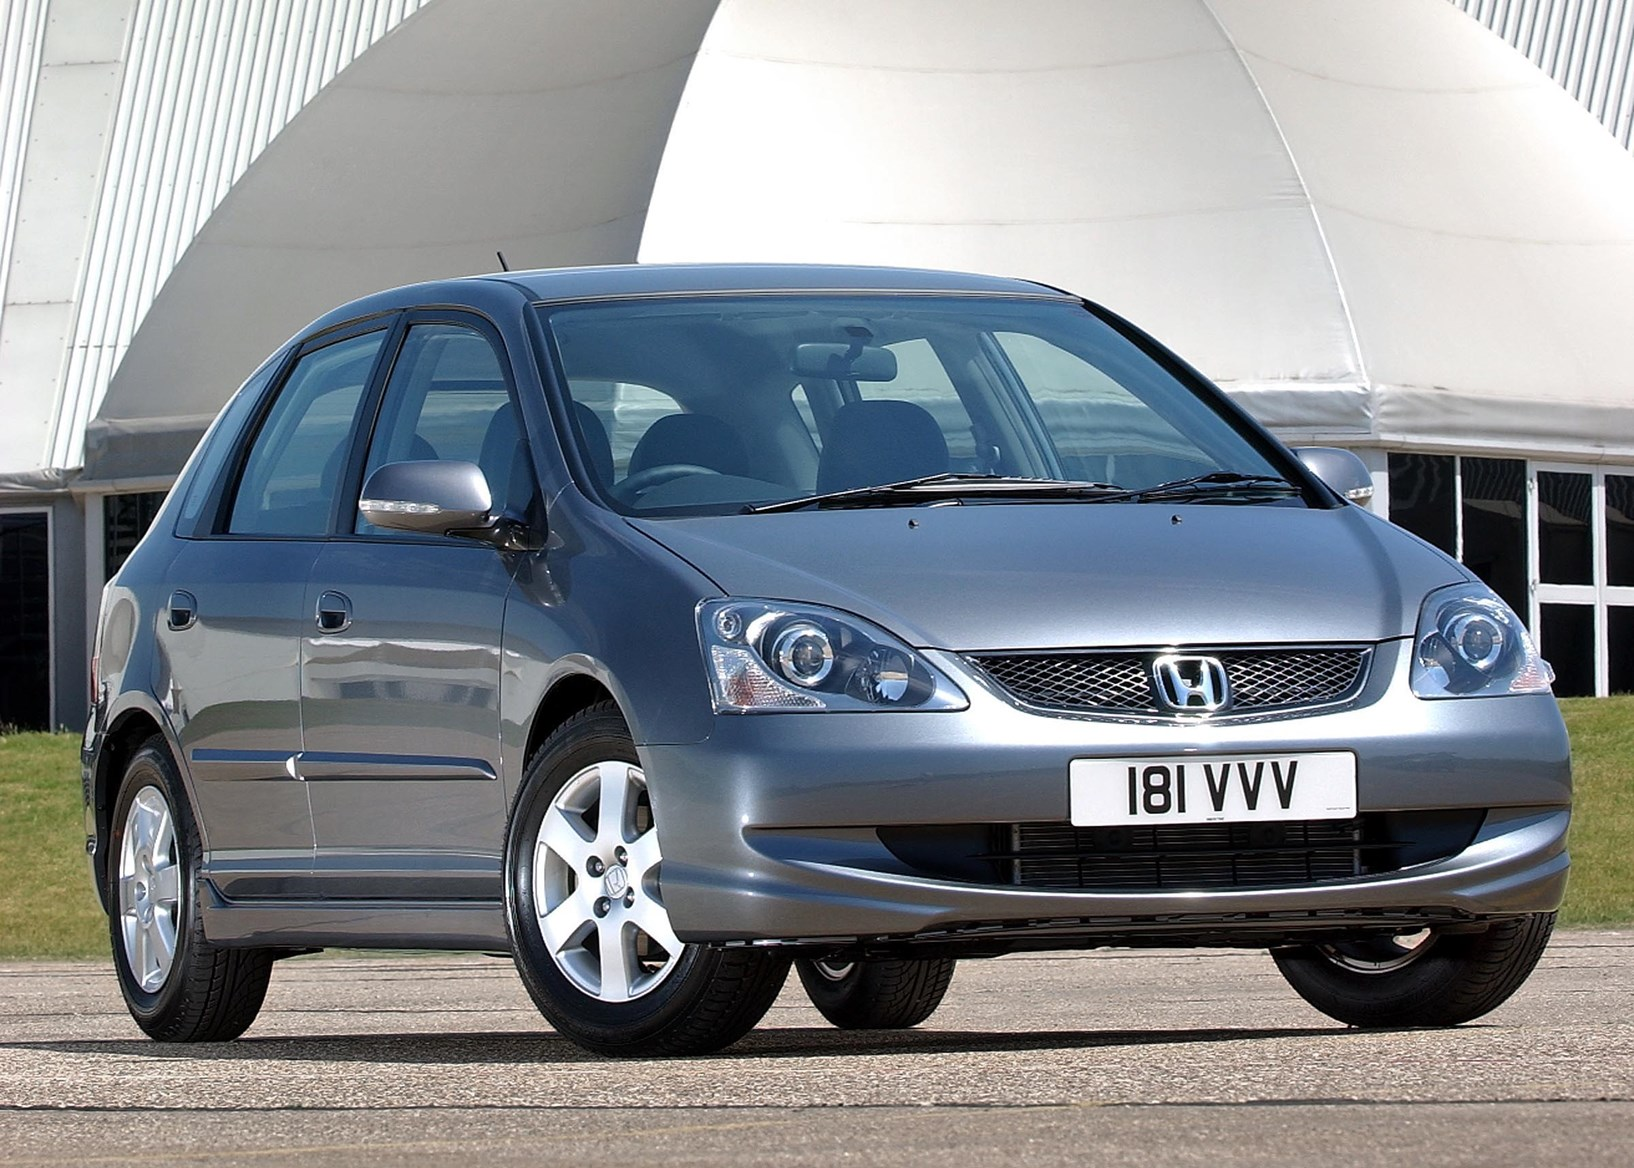 Honda Civic Hatchback Review (2000 - 2005) | Parkers